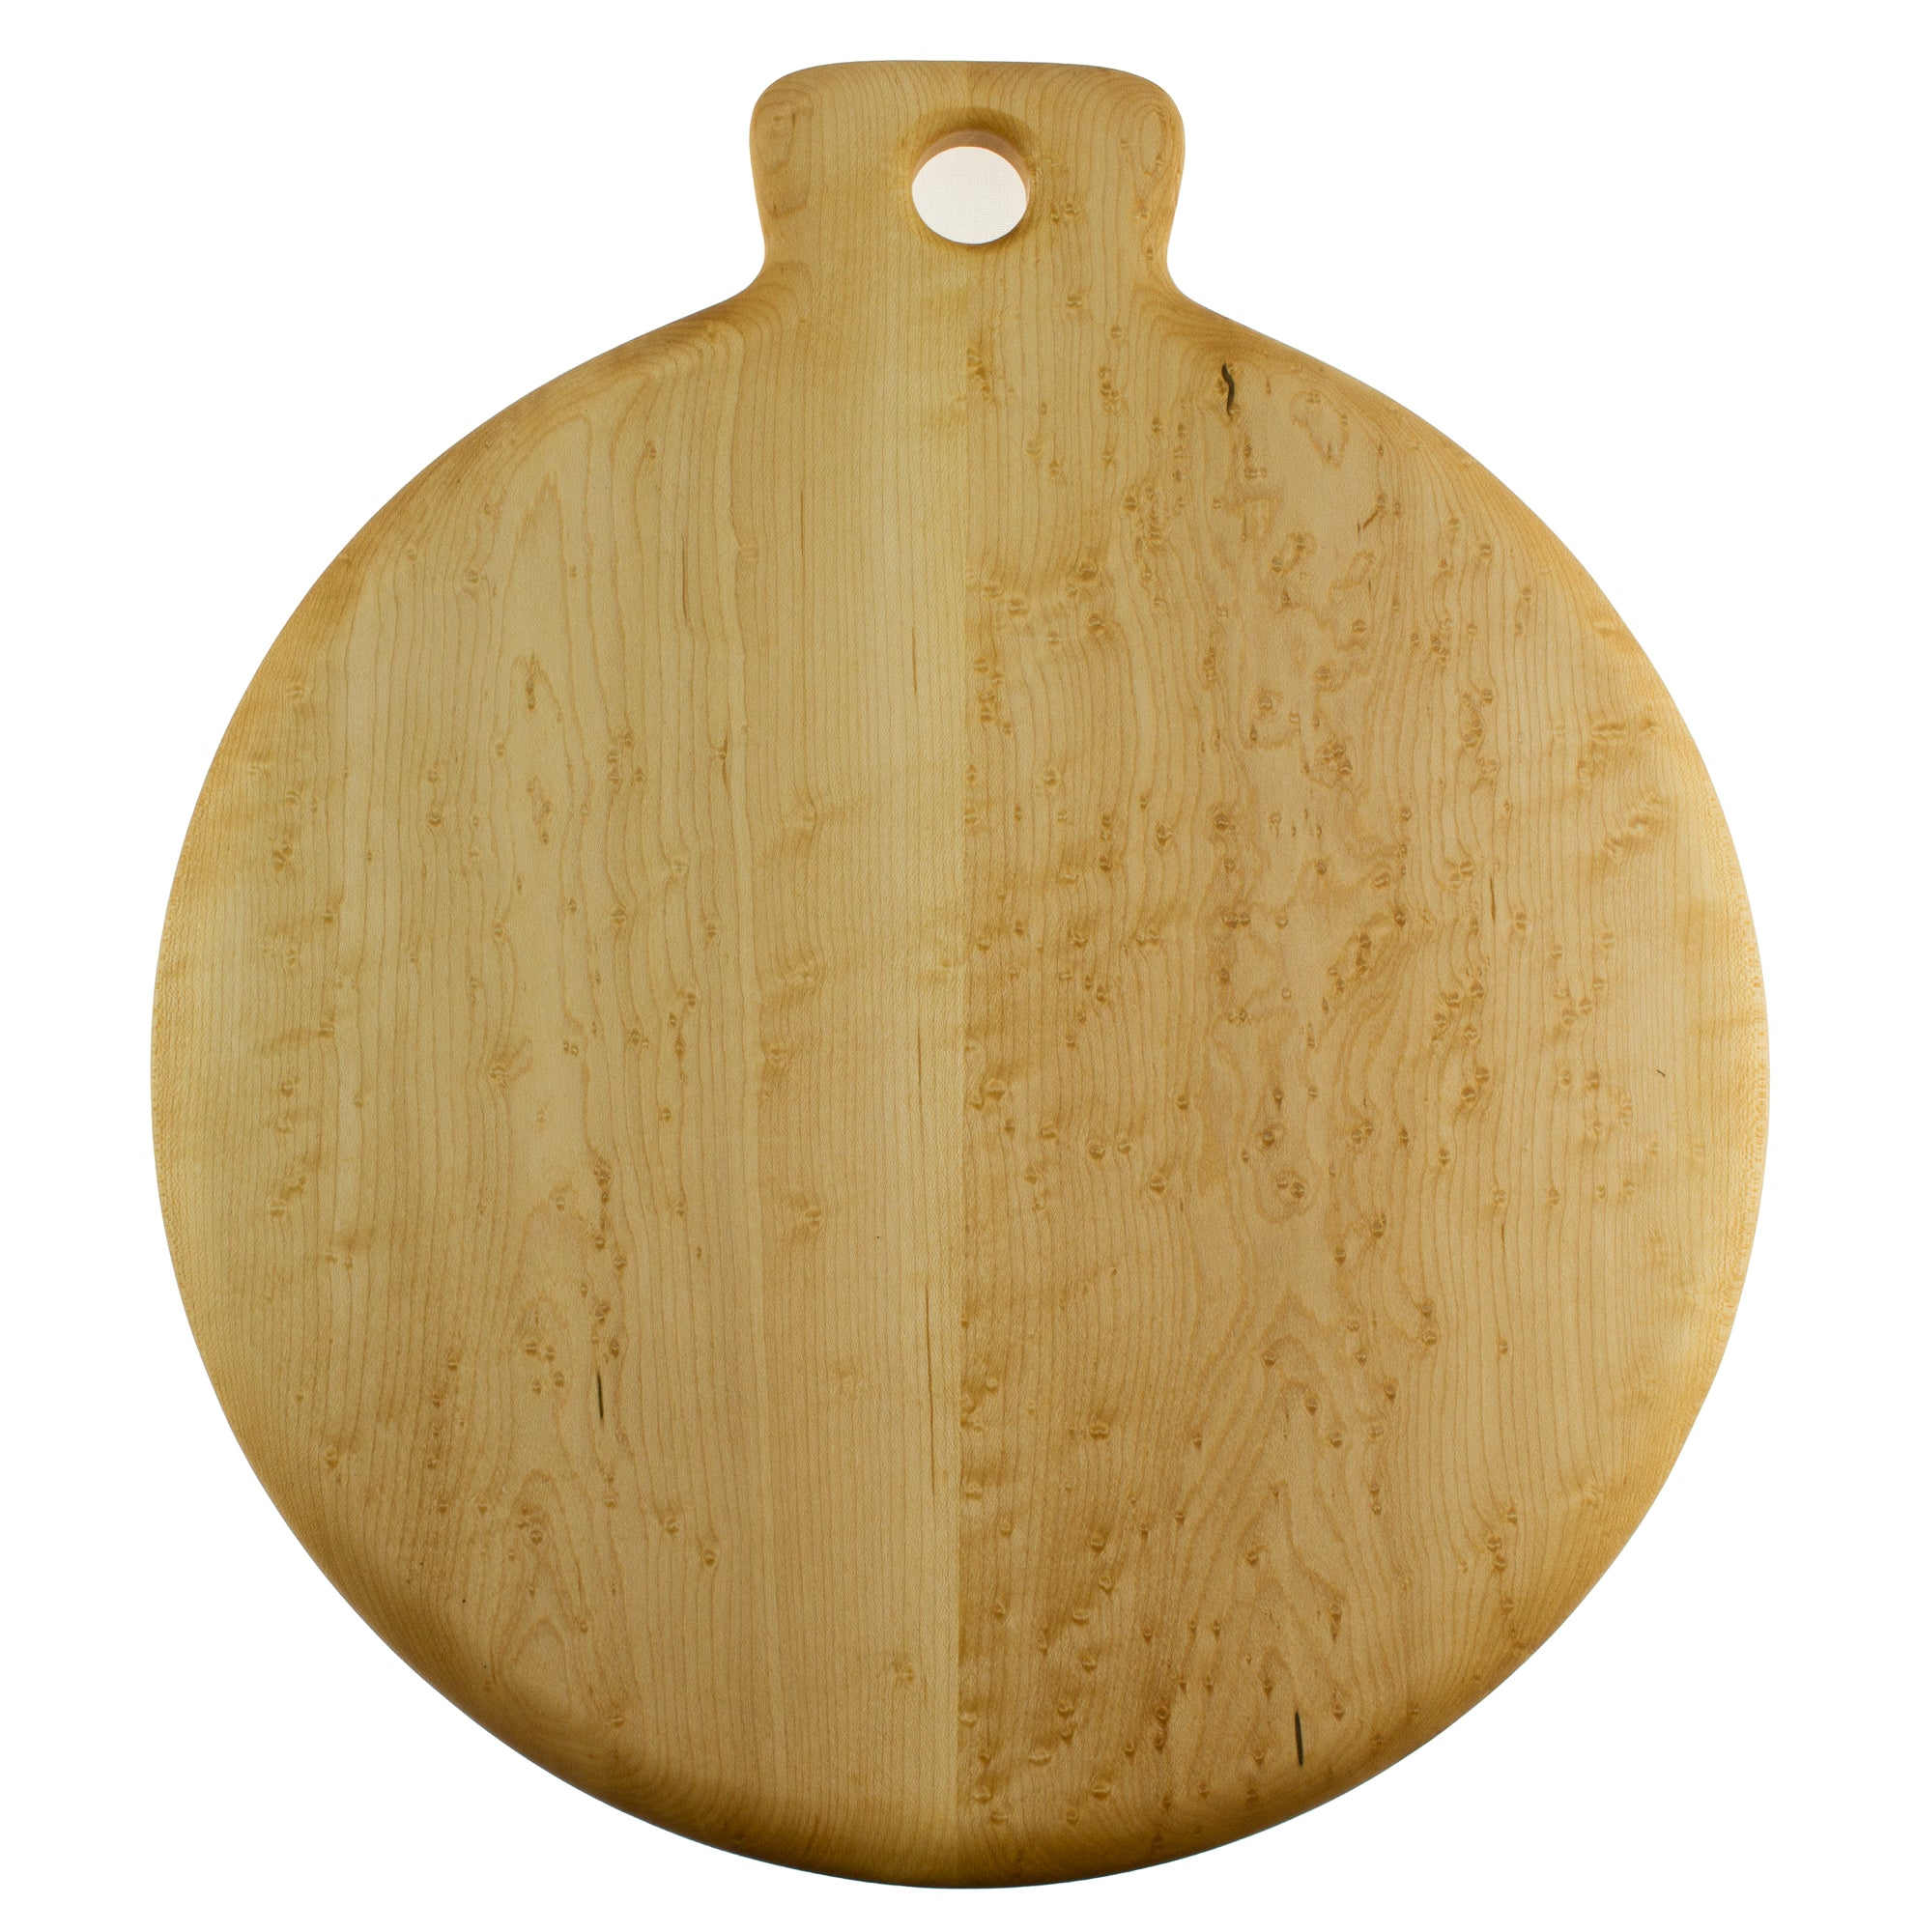 Sirius - Serving and Cutting Board - 14